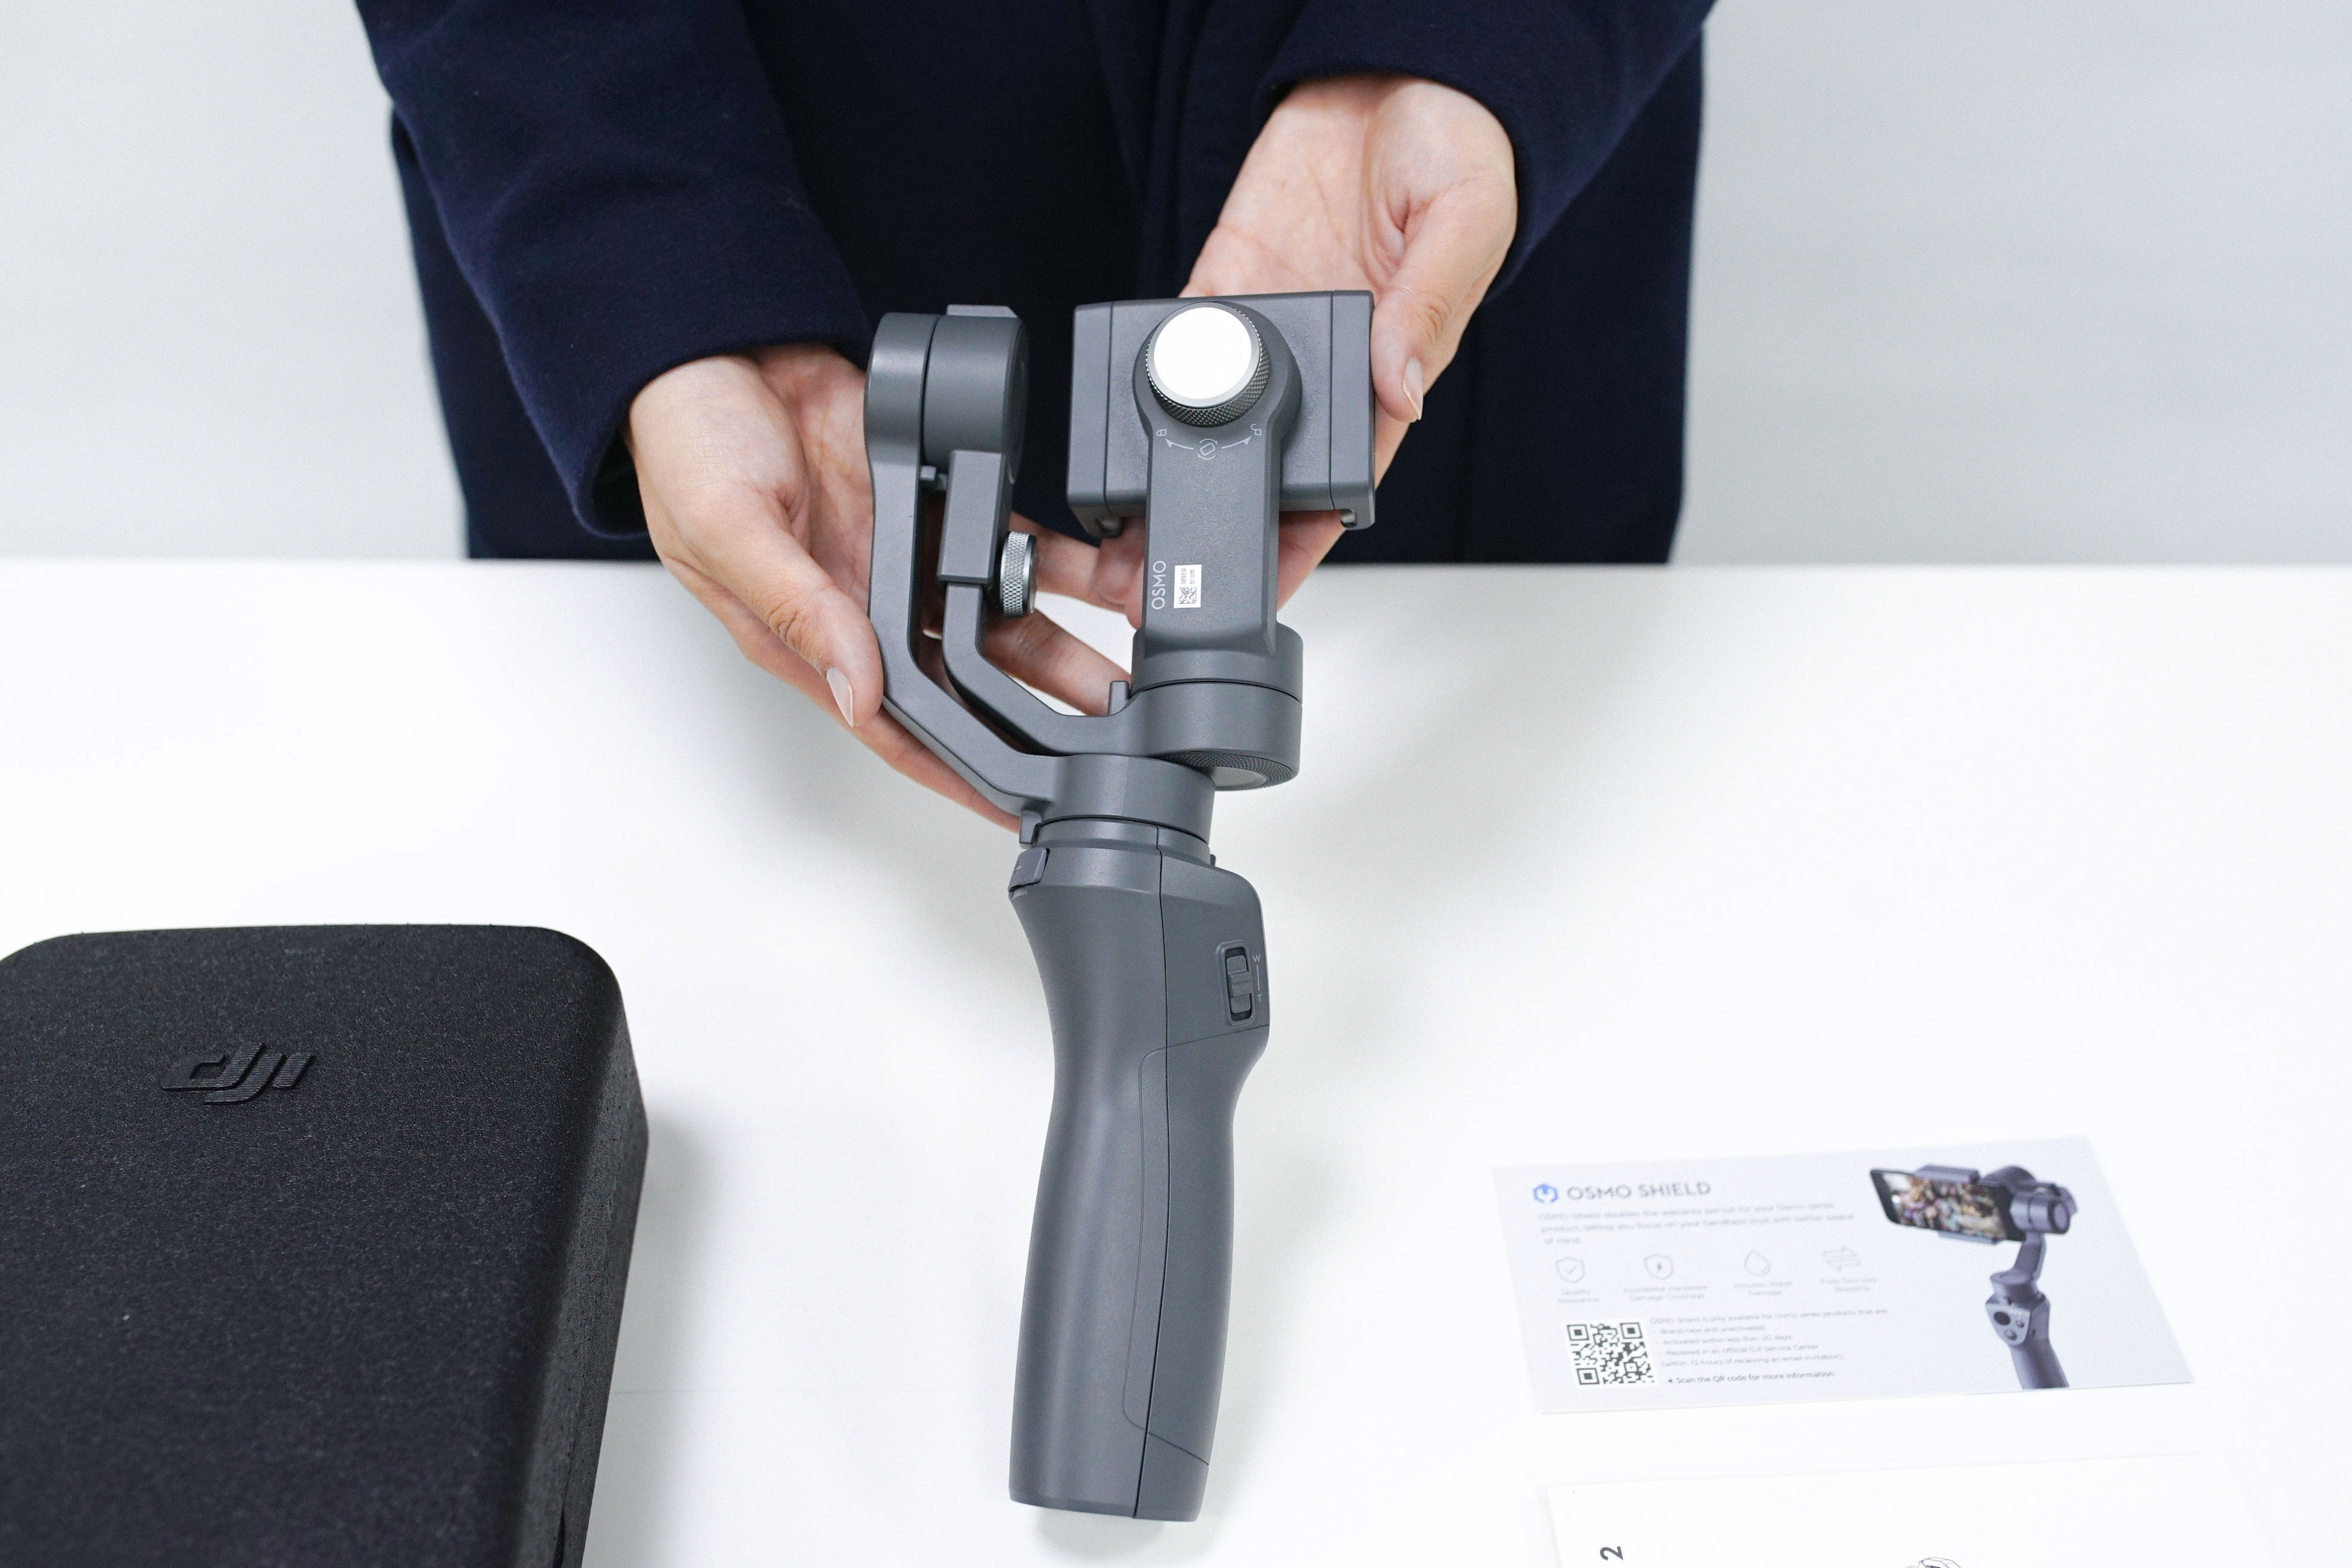 Dji Osmo Mobile 2 Review Stabilizer Reviews Free Base Phone